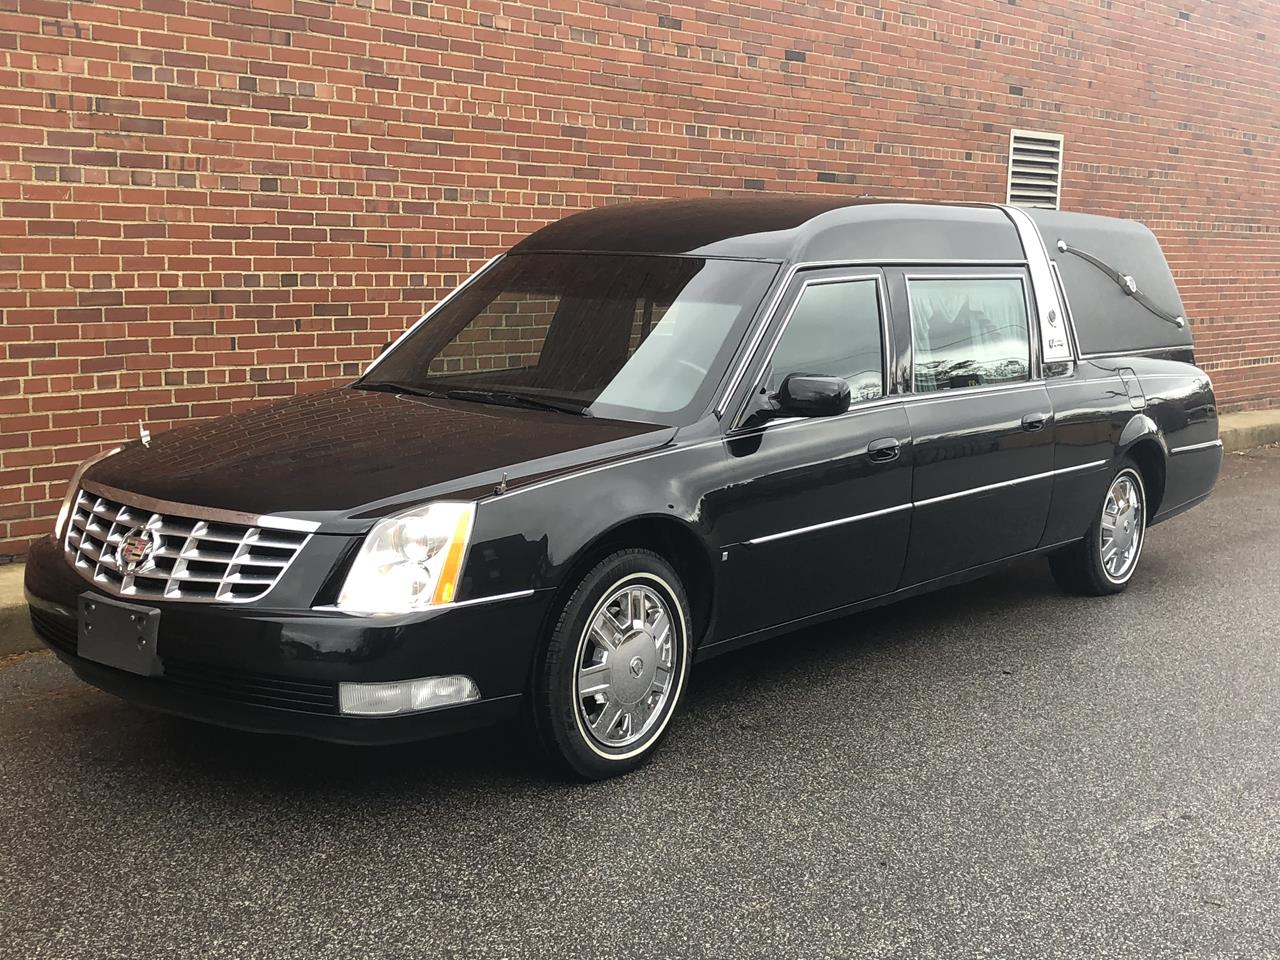 2006 Cadillac Superior Crown Sovereign Hearse 93 18